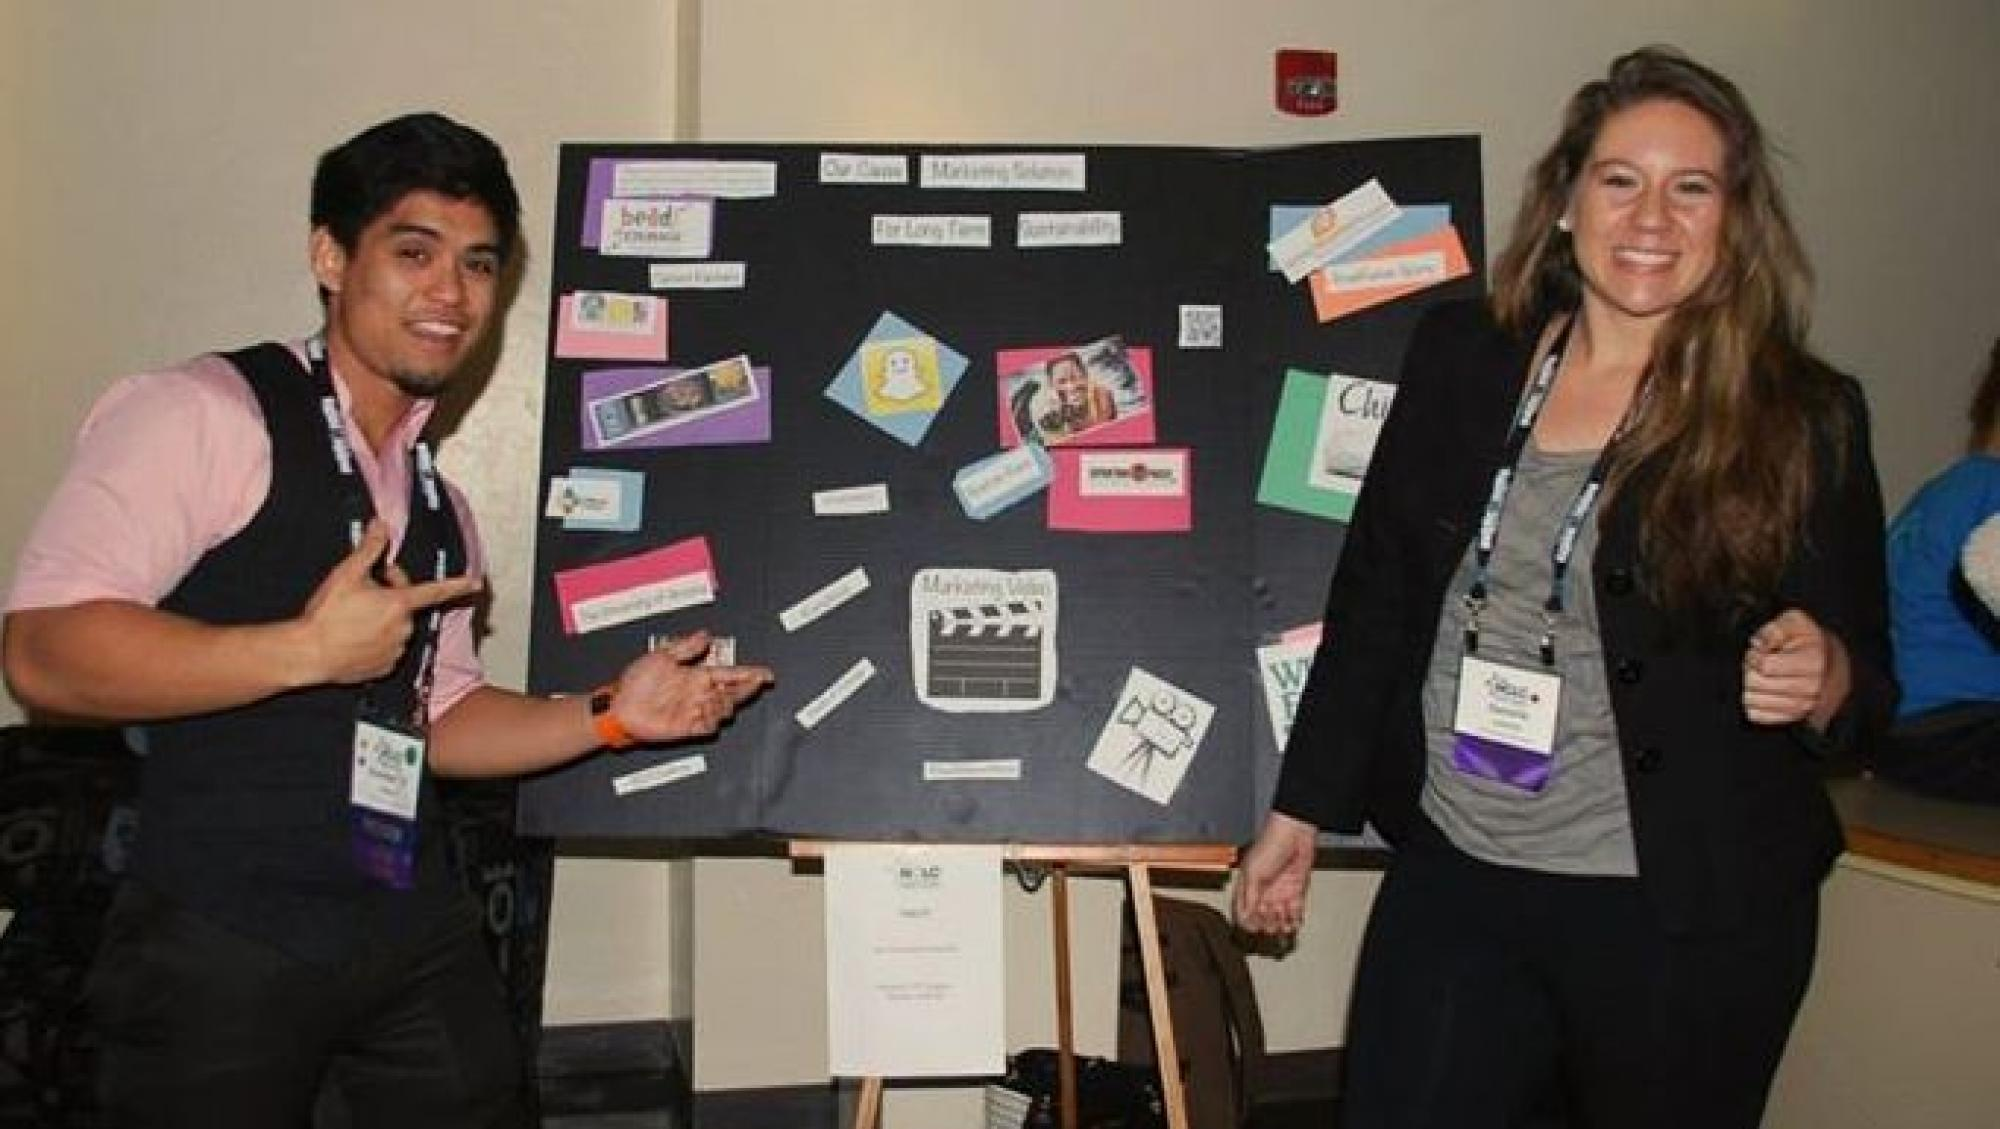 To ensure that students gain practical leadership experience, they are engaged in service opportunities during the conference.